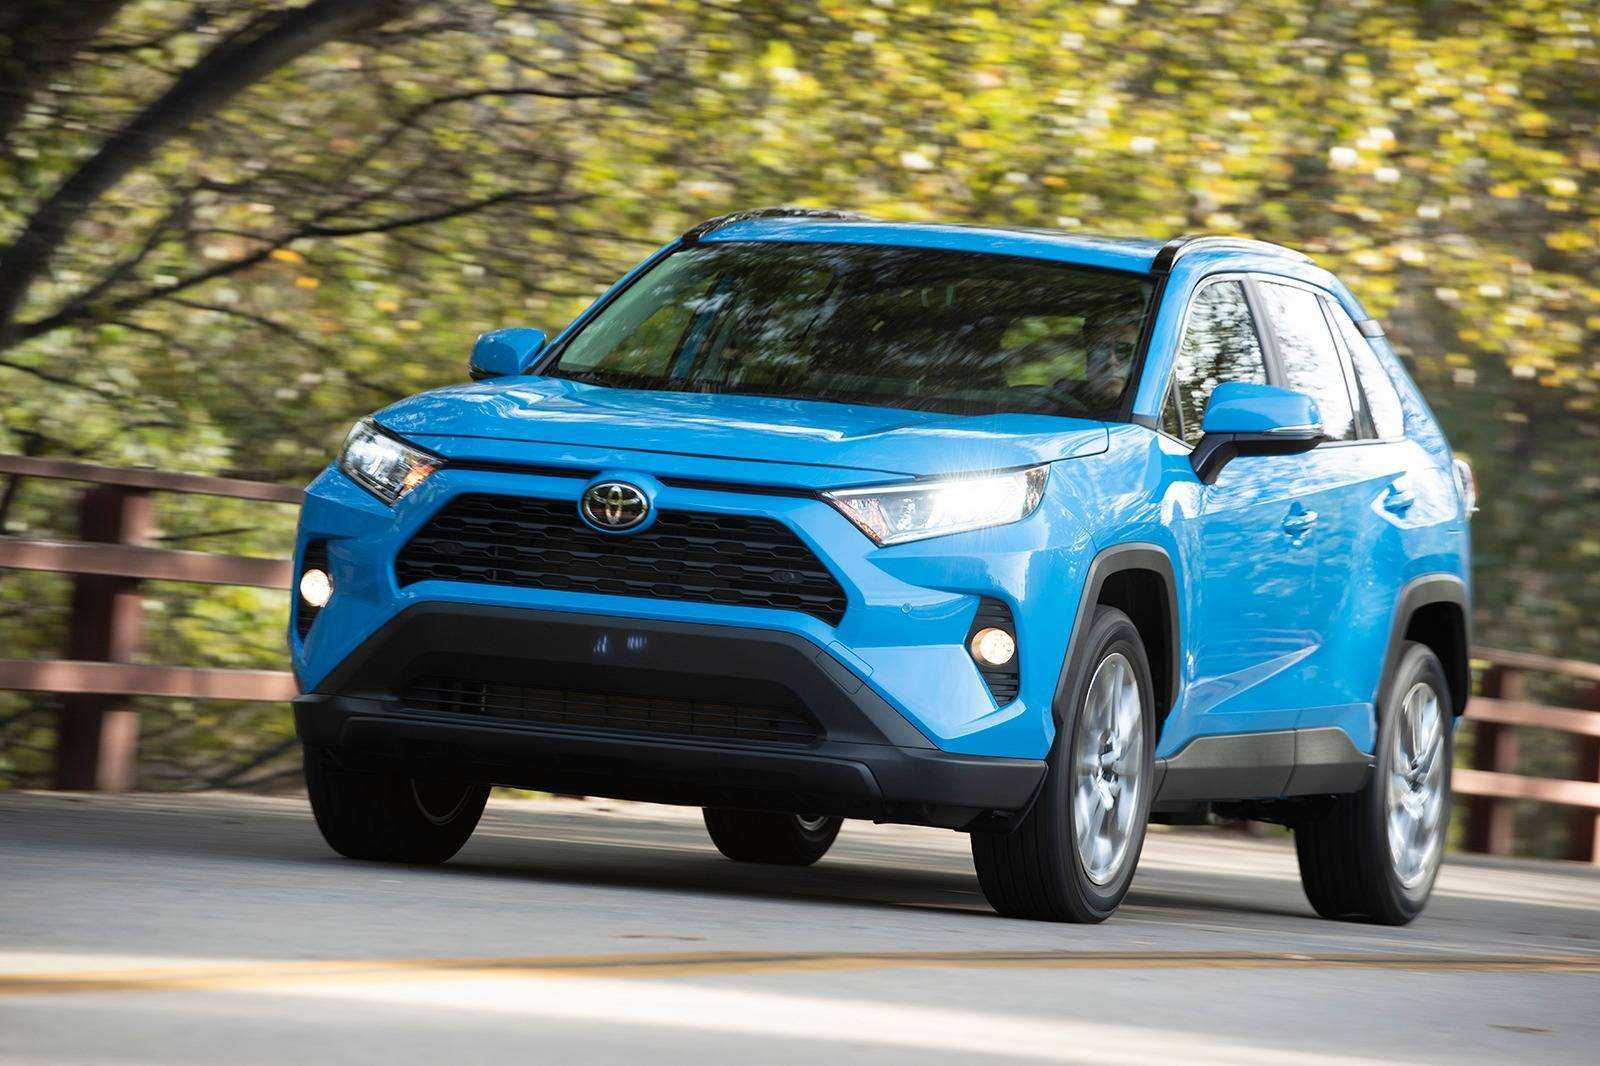 15 Great 2019 Toyota Rav4 Price for 2019 Toyota Rav4